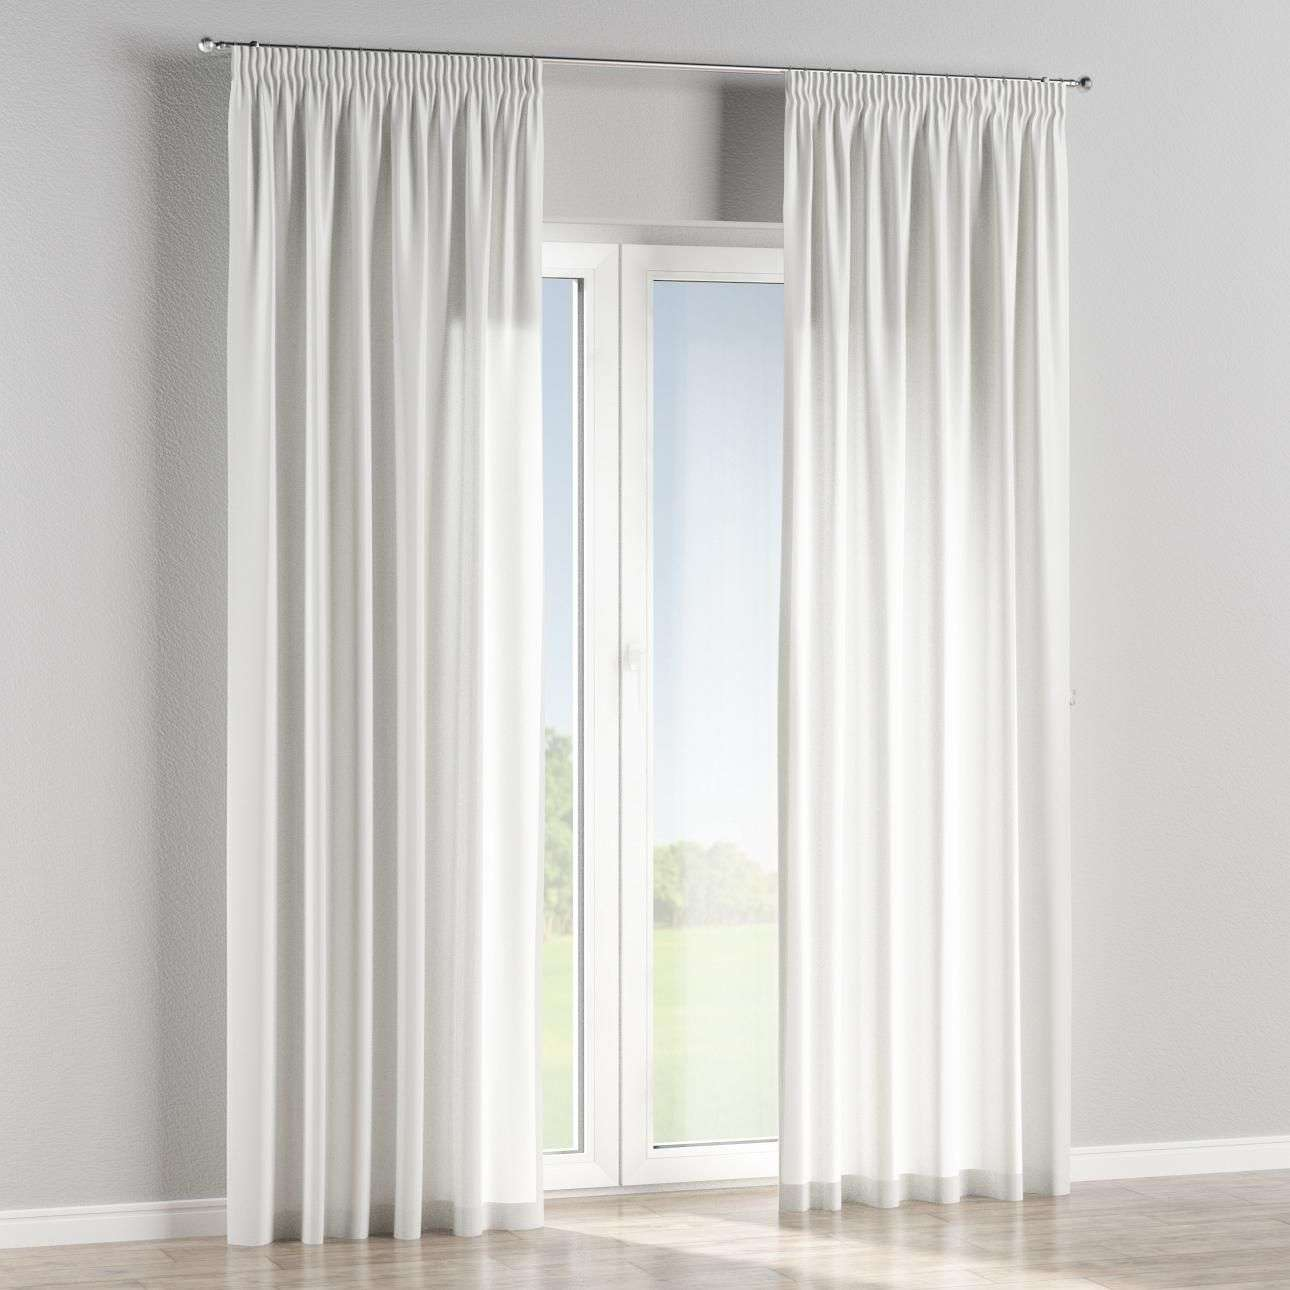 Pencil pleat lined curtains in collection Bristol, fabric: 125-25